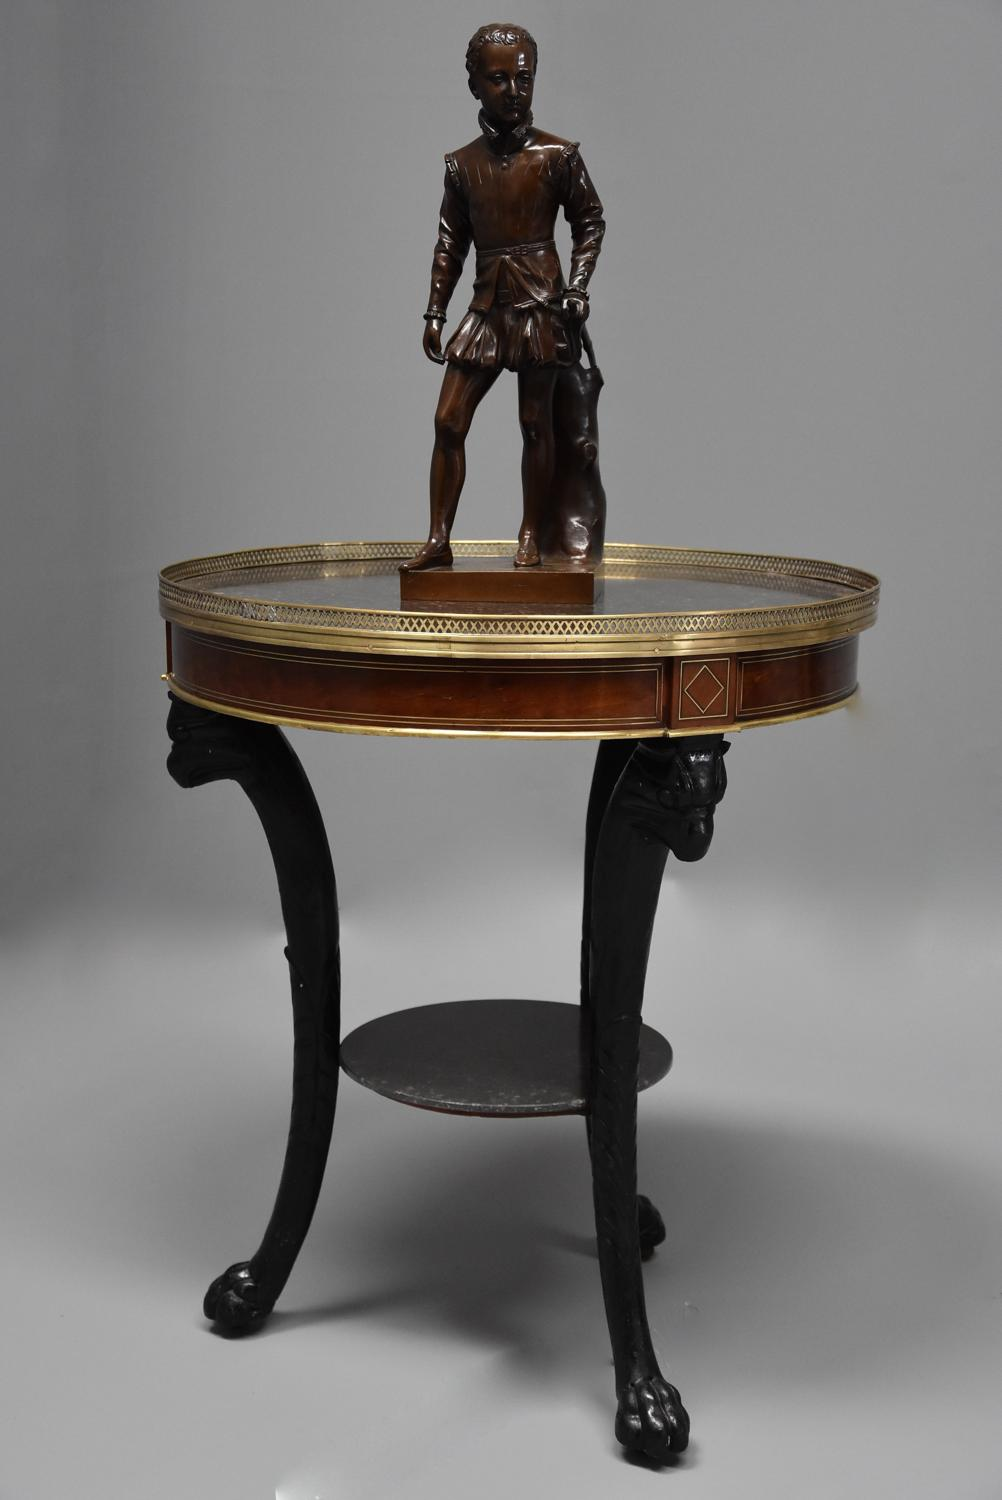 Late 18thc French Empire mahogany and marble gueridon table